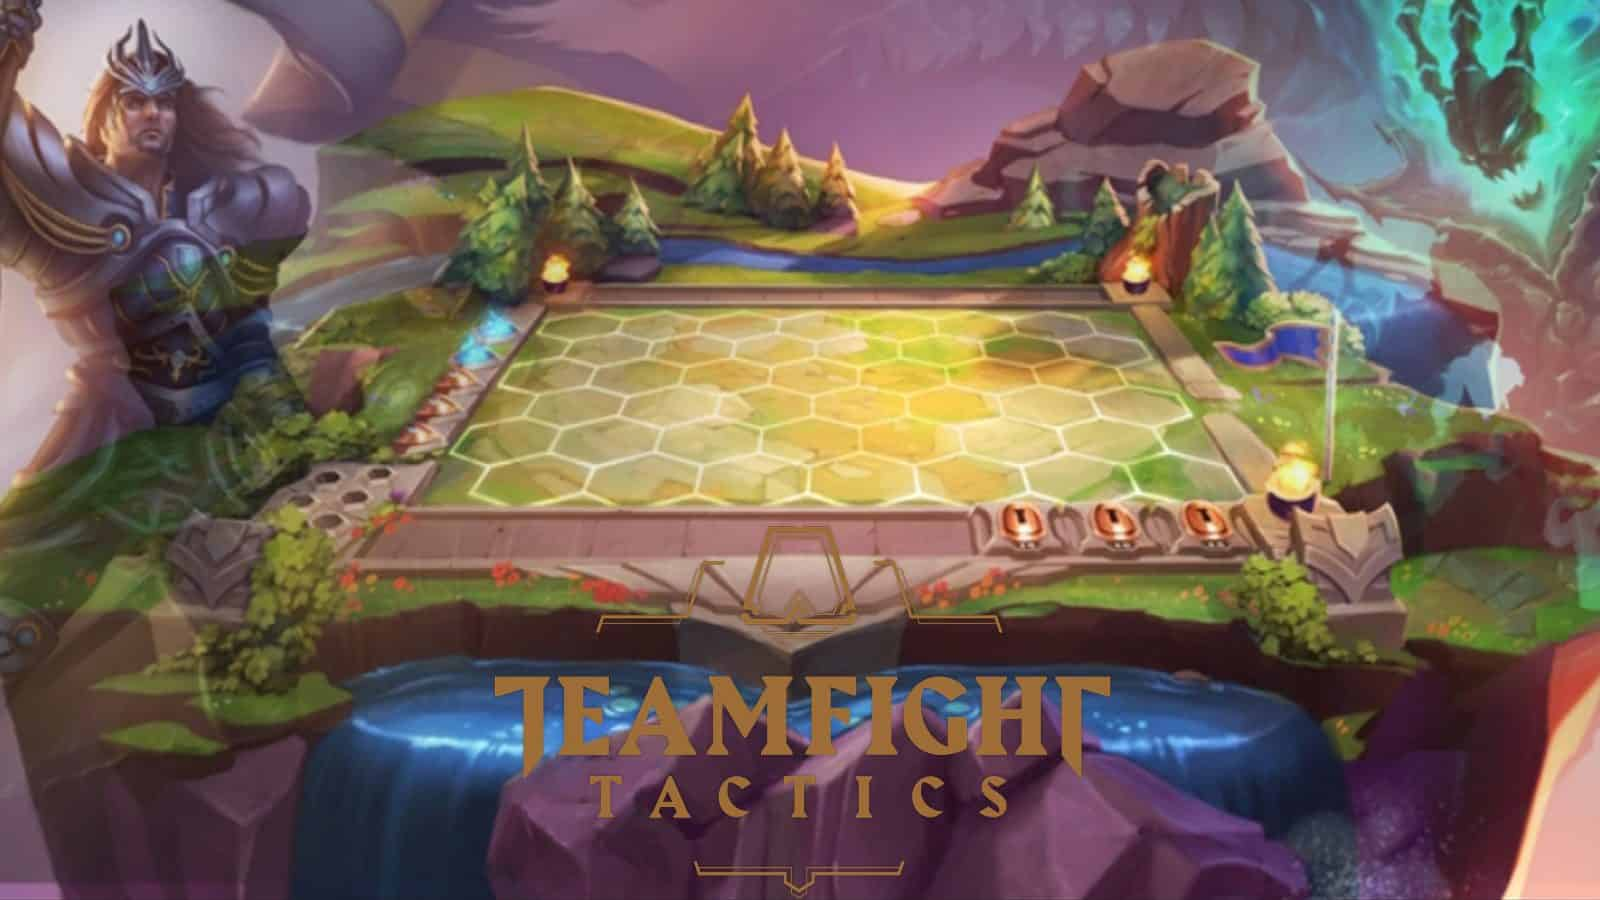 Photo of The full beginner guide for new Teamfight Tactics mode in League of Legends